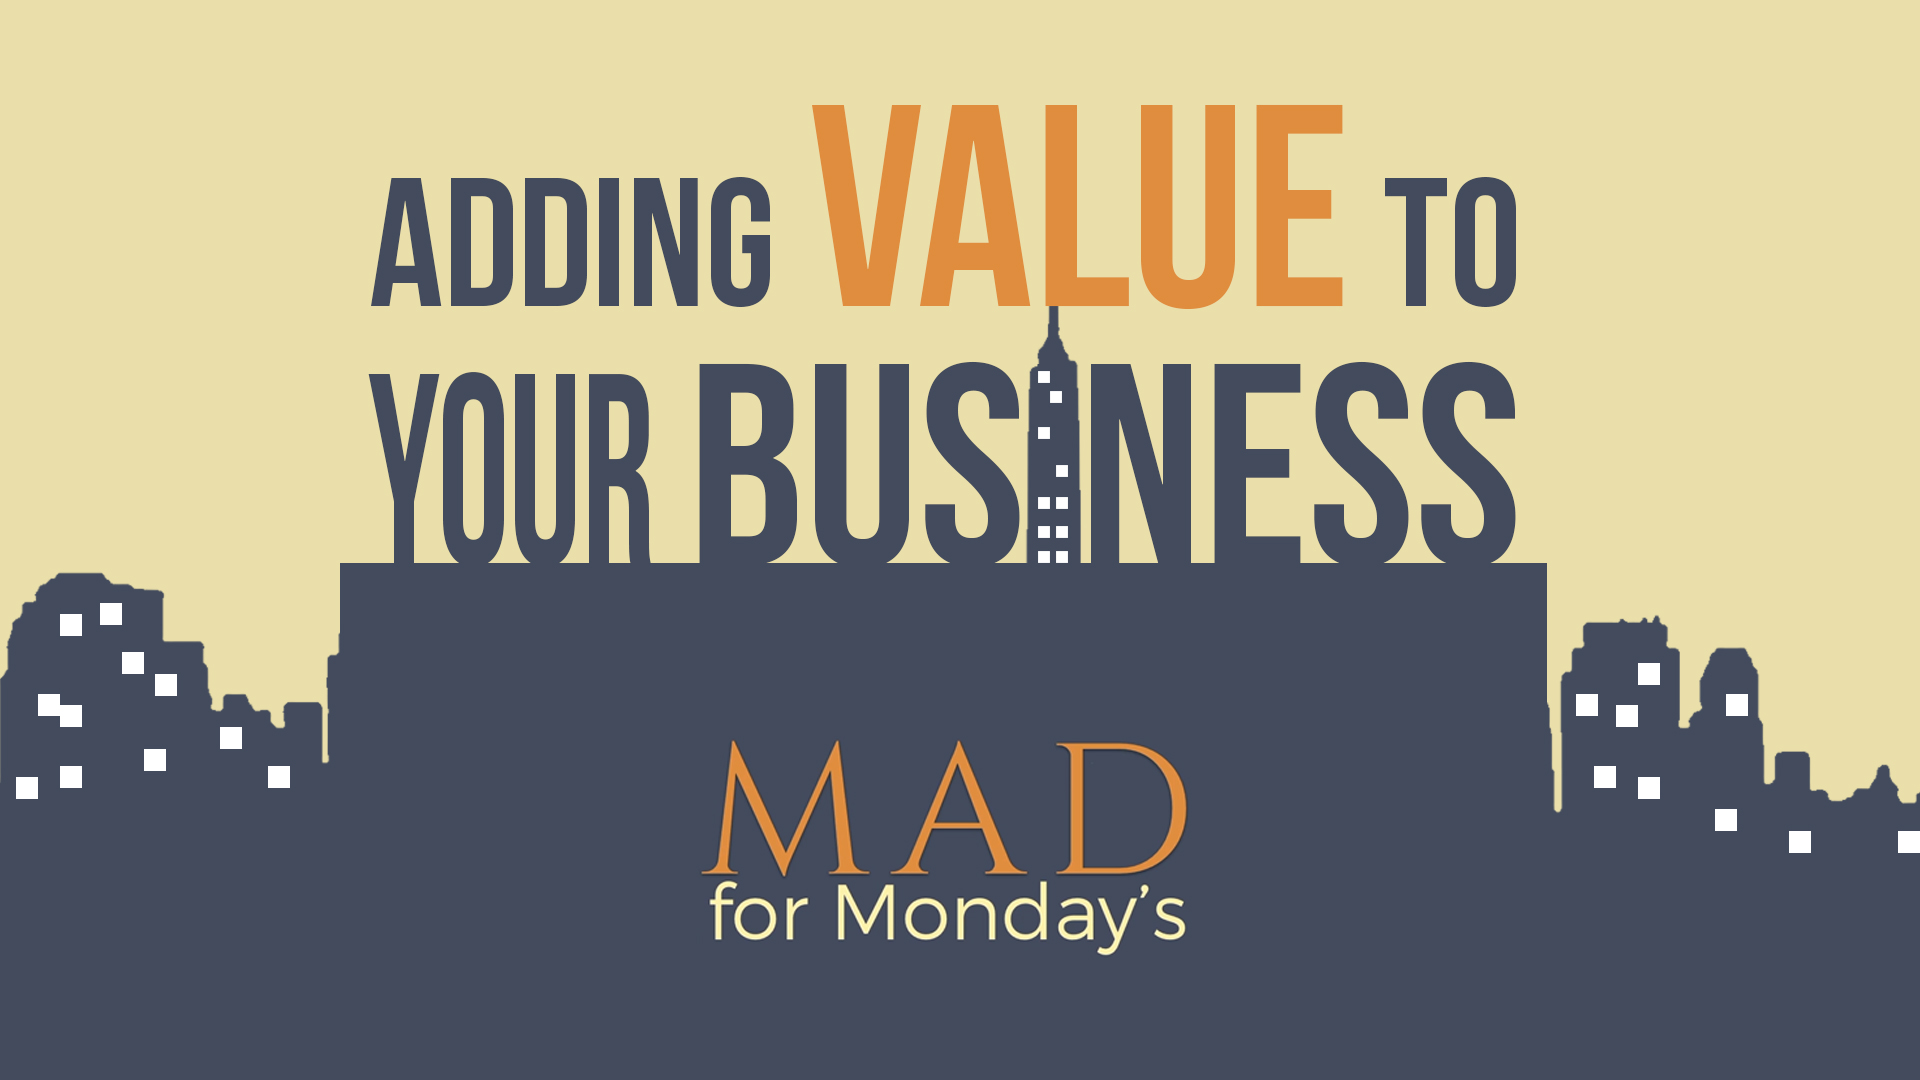 MAD for Monday's – Adding Value to your Business